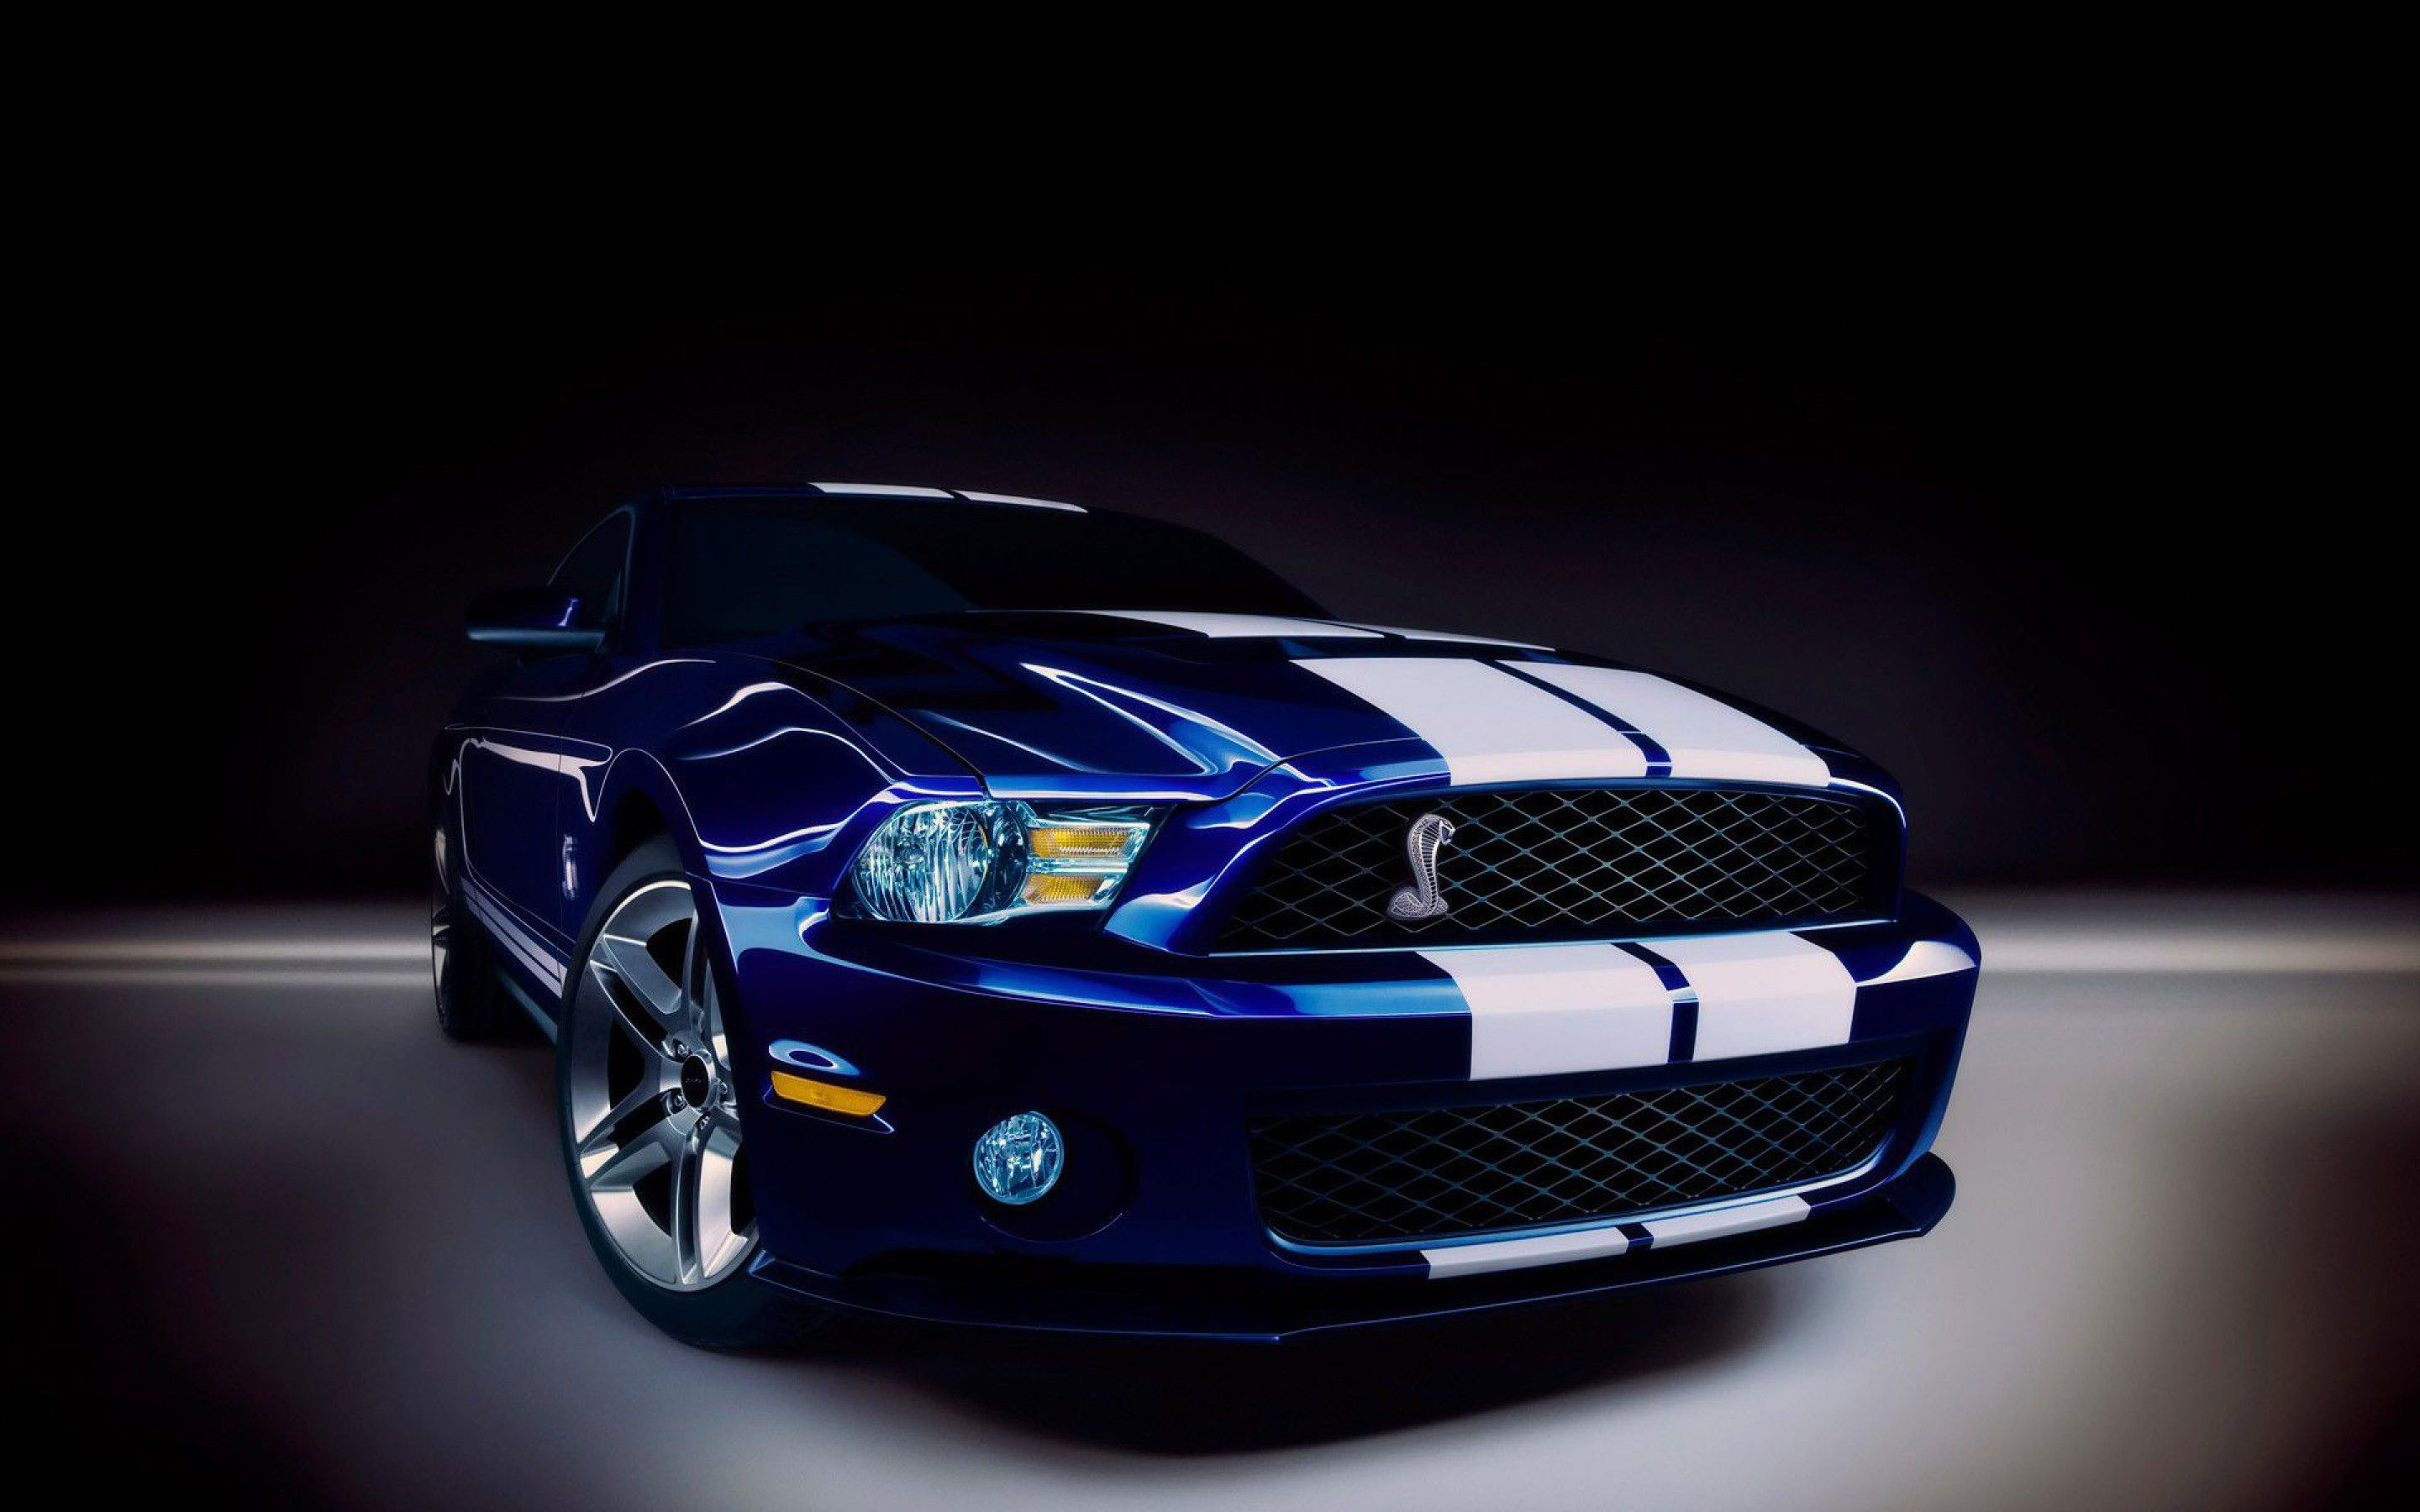 Wallpapers Collection Sports Car Wallpapers Car Wallpapers Ford Mustang Shelby Gt500 Mustang